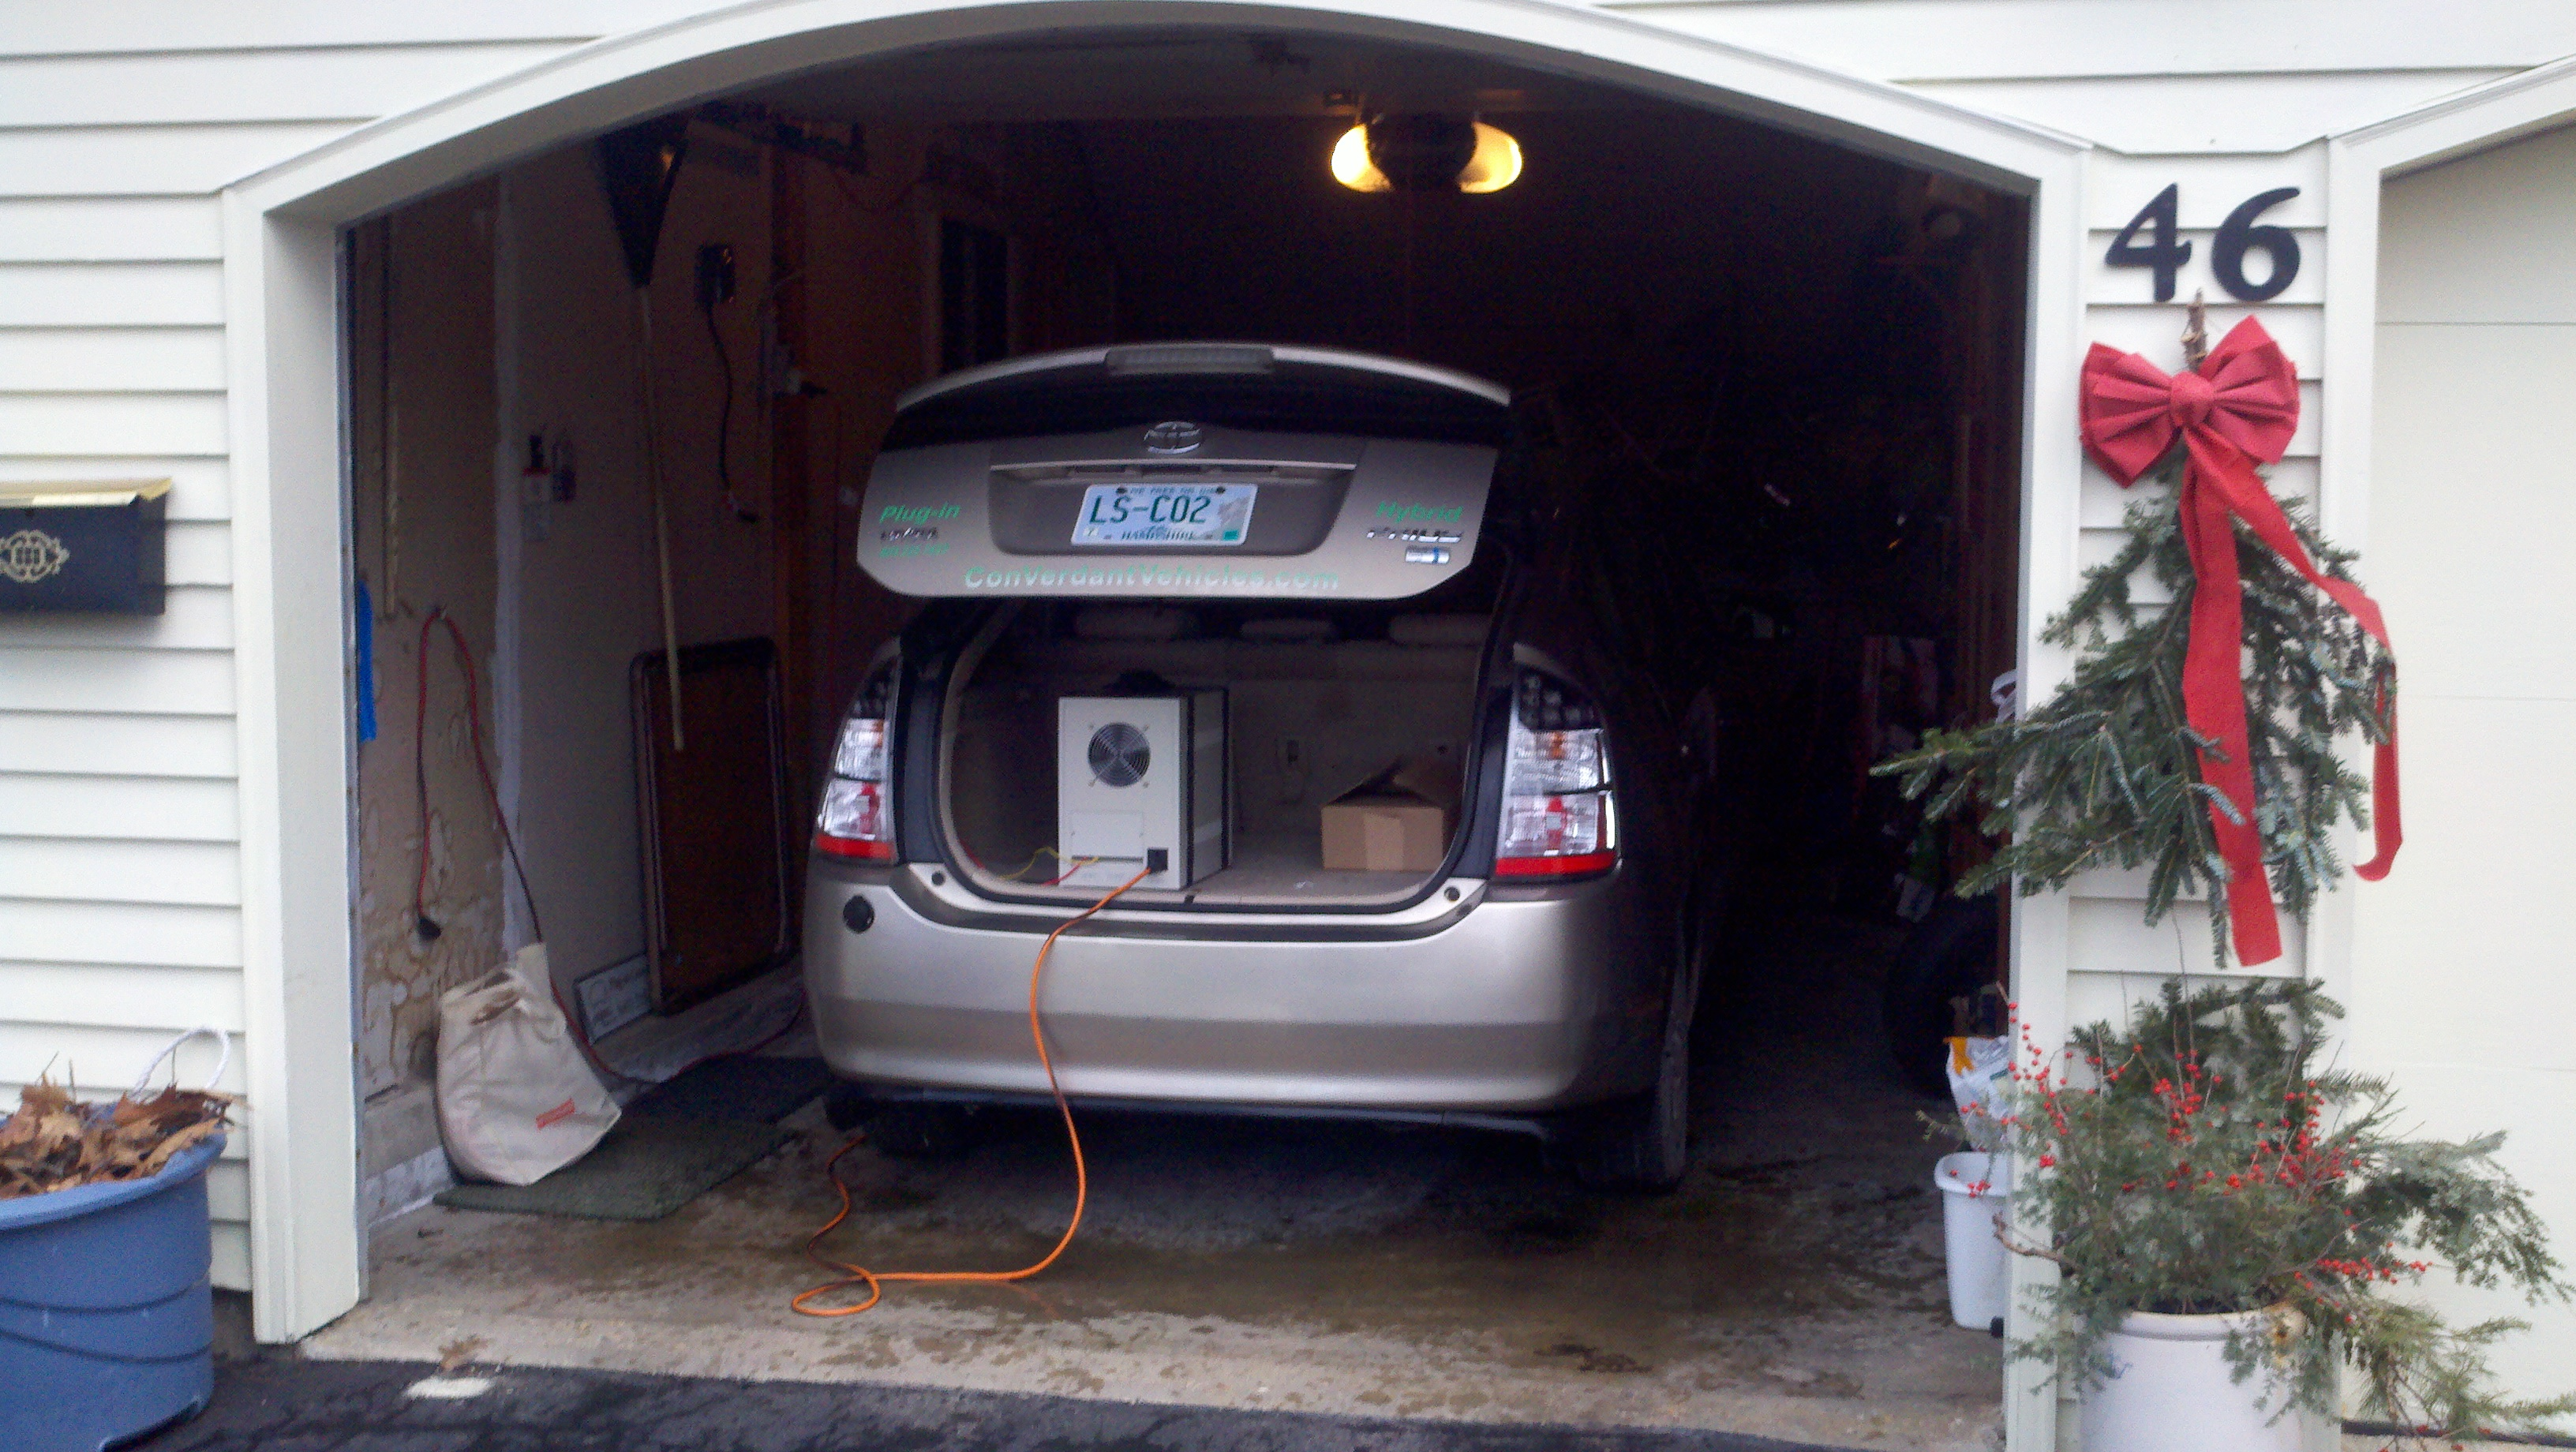 An Inverter In The Trunk Of A Prius And S House Photos Courtesy Converdant Vehicles Llc